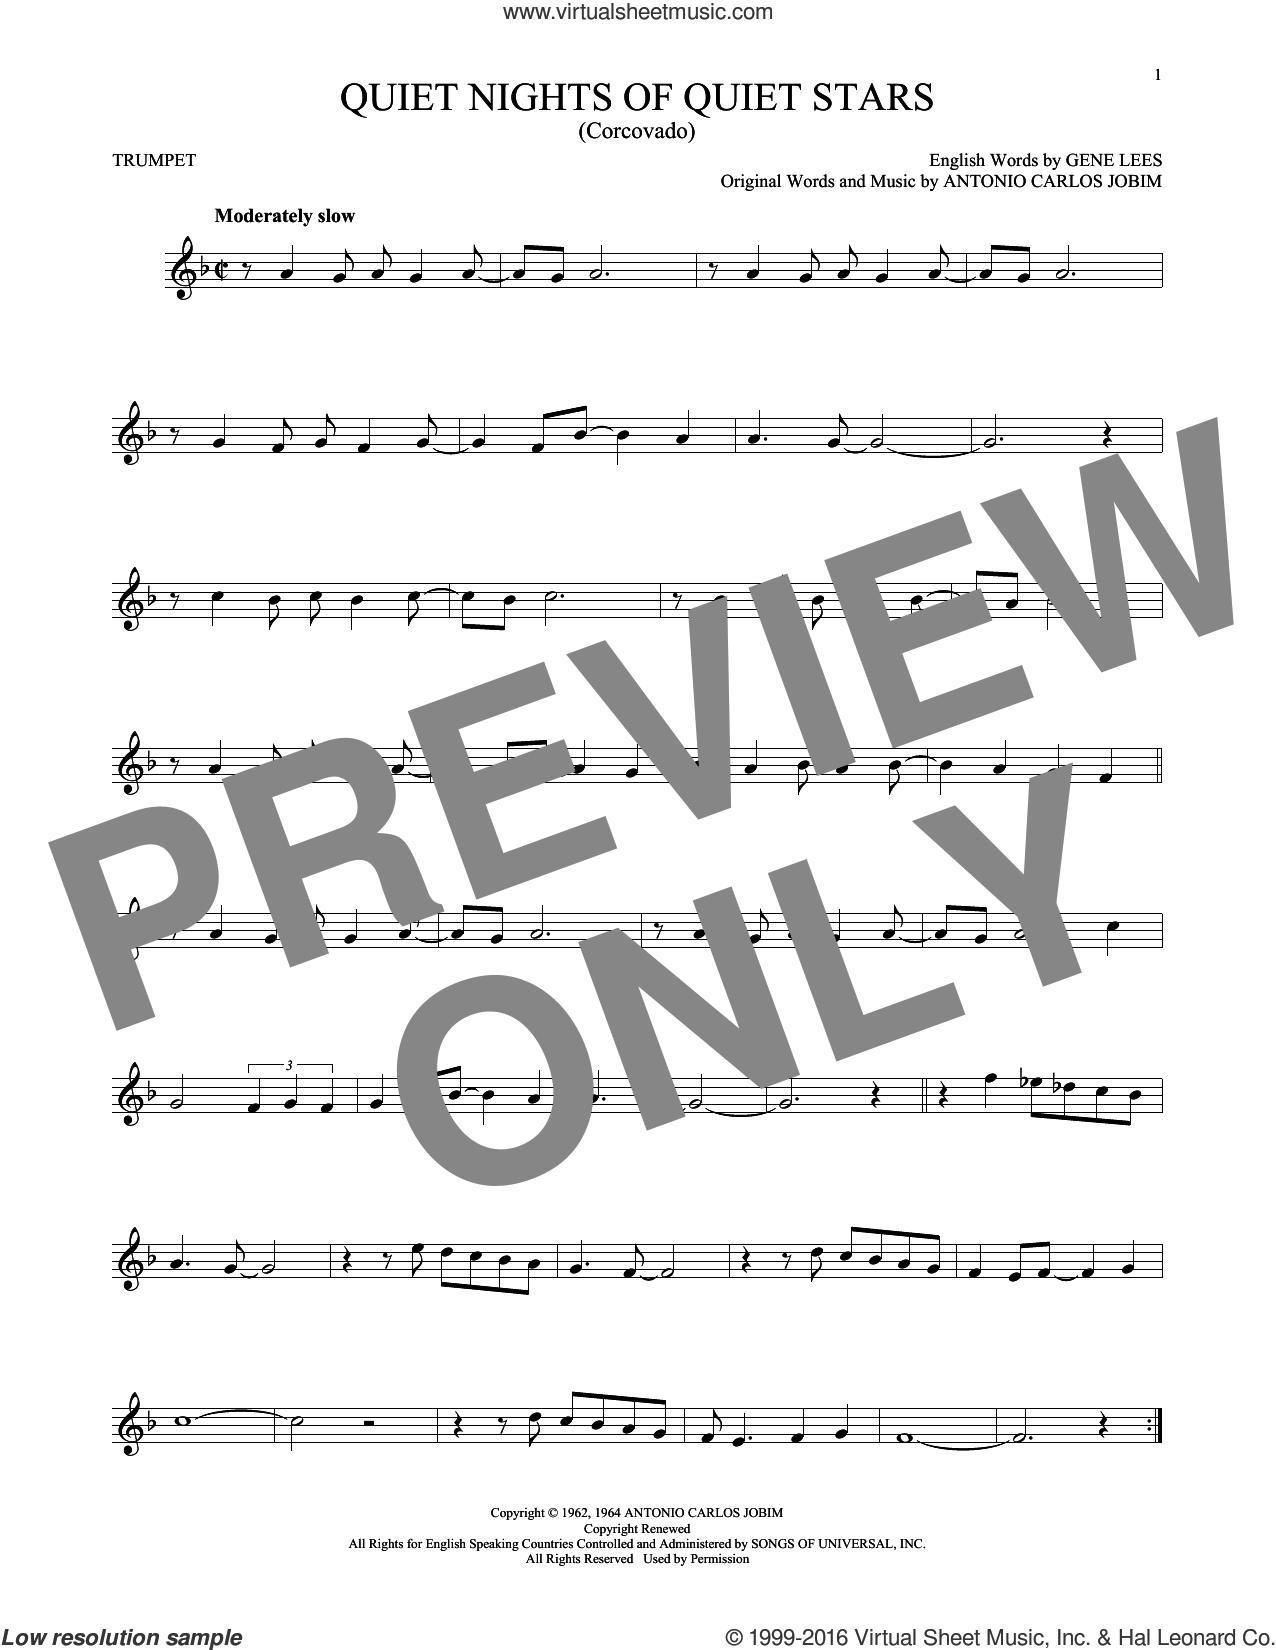 Quiet Nights Of Quiet Stars (Corcovado) sheet music for trumpet solo by Andy Williams, Antonio Carlos Jobim and Eugene John Lees, intermediate skill level